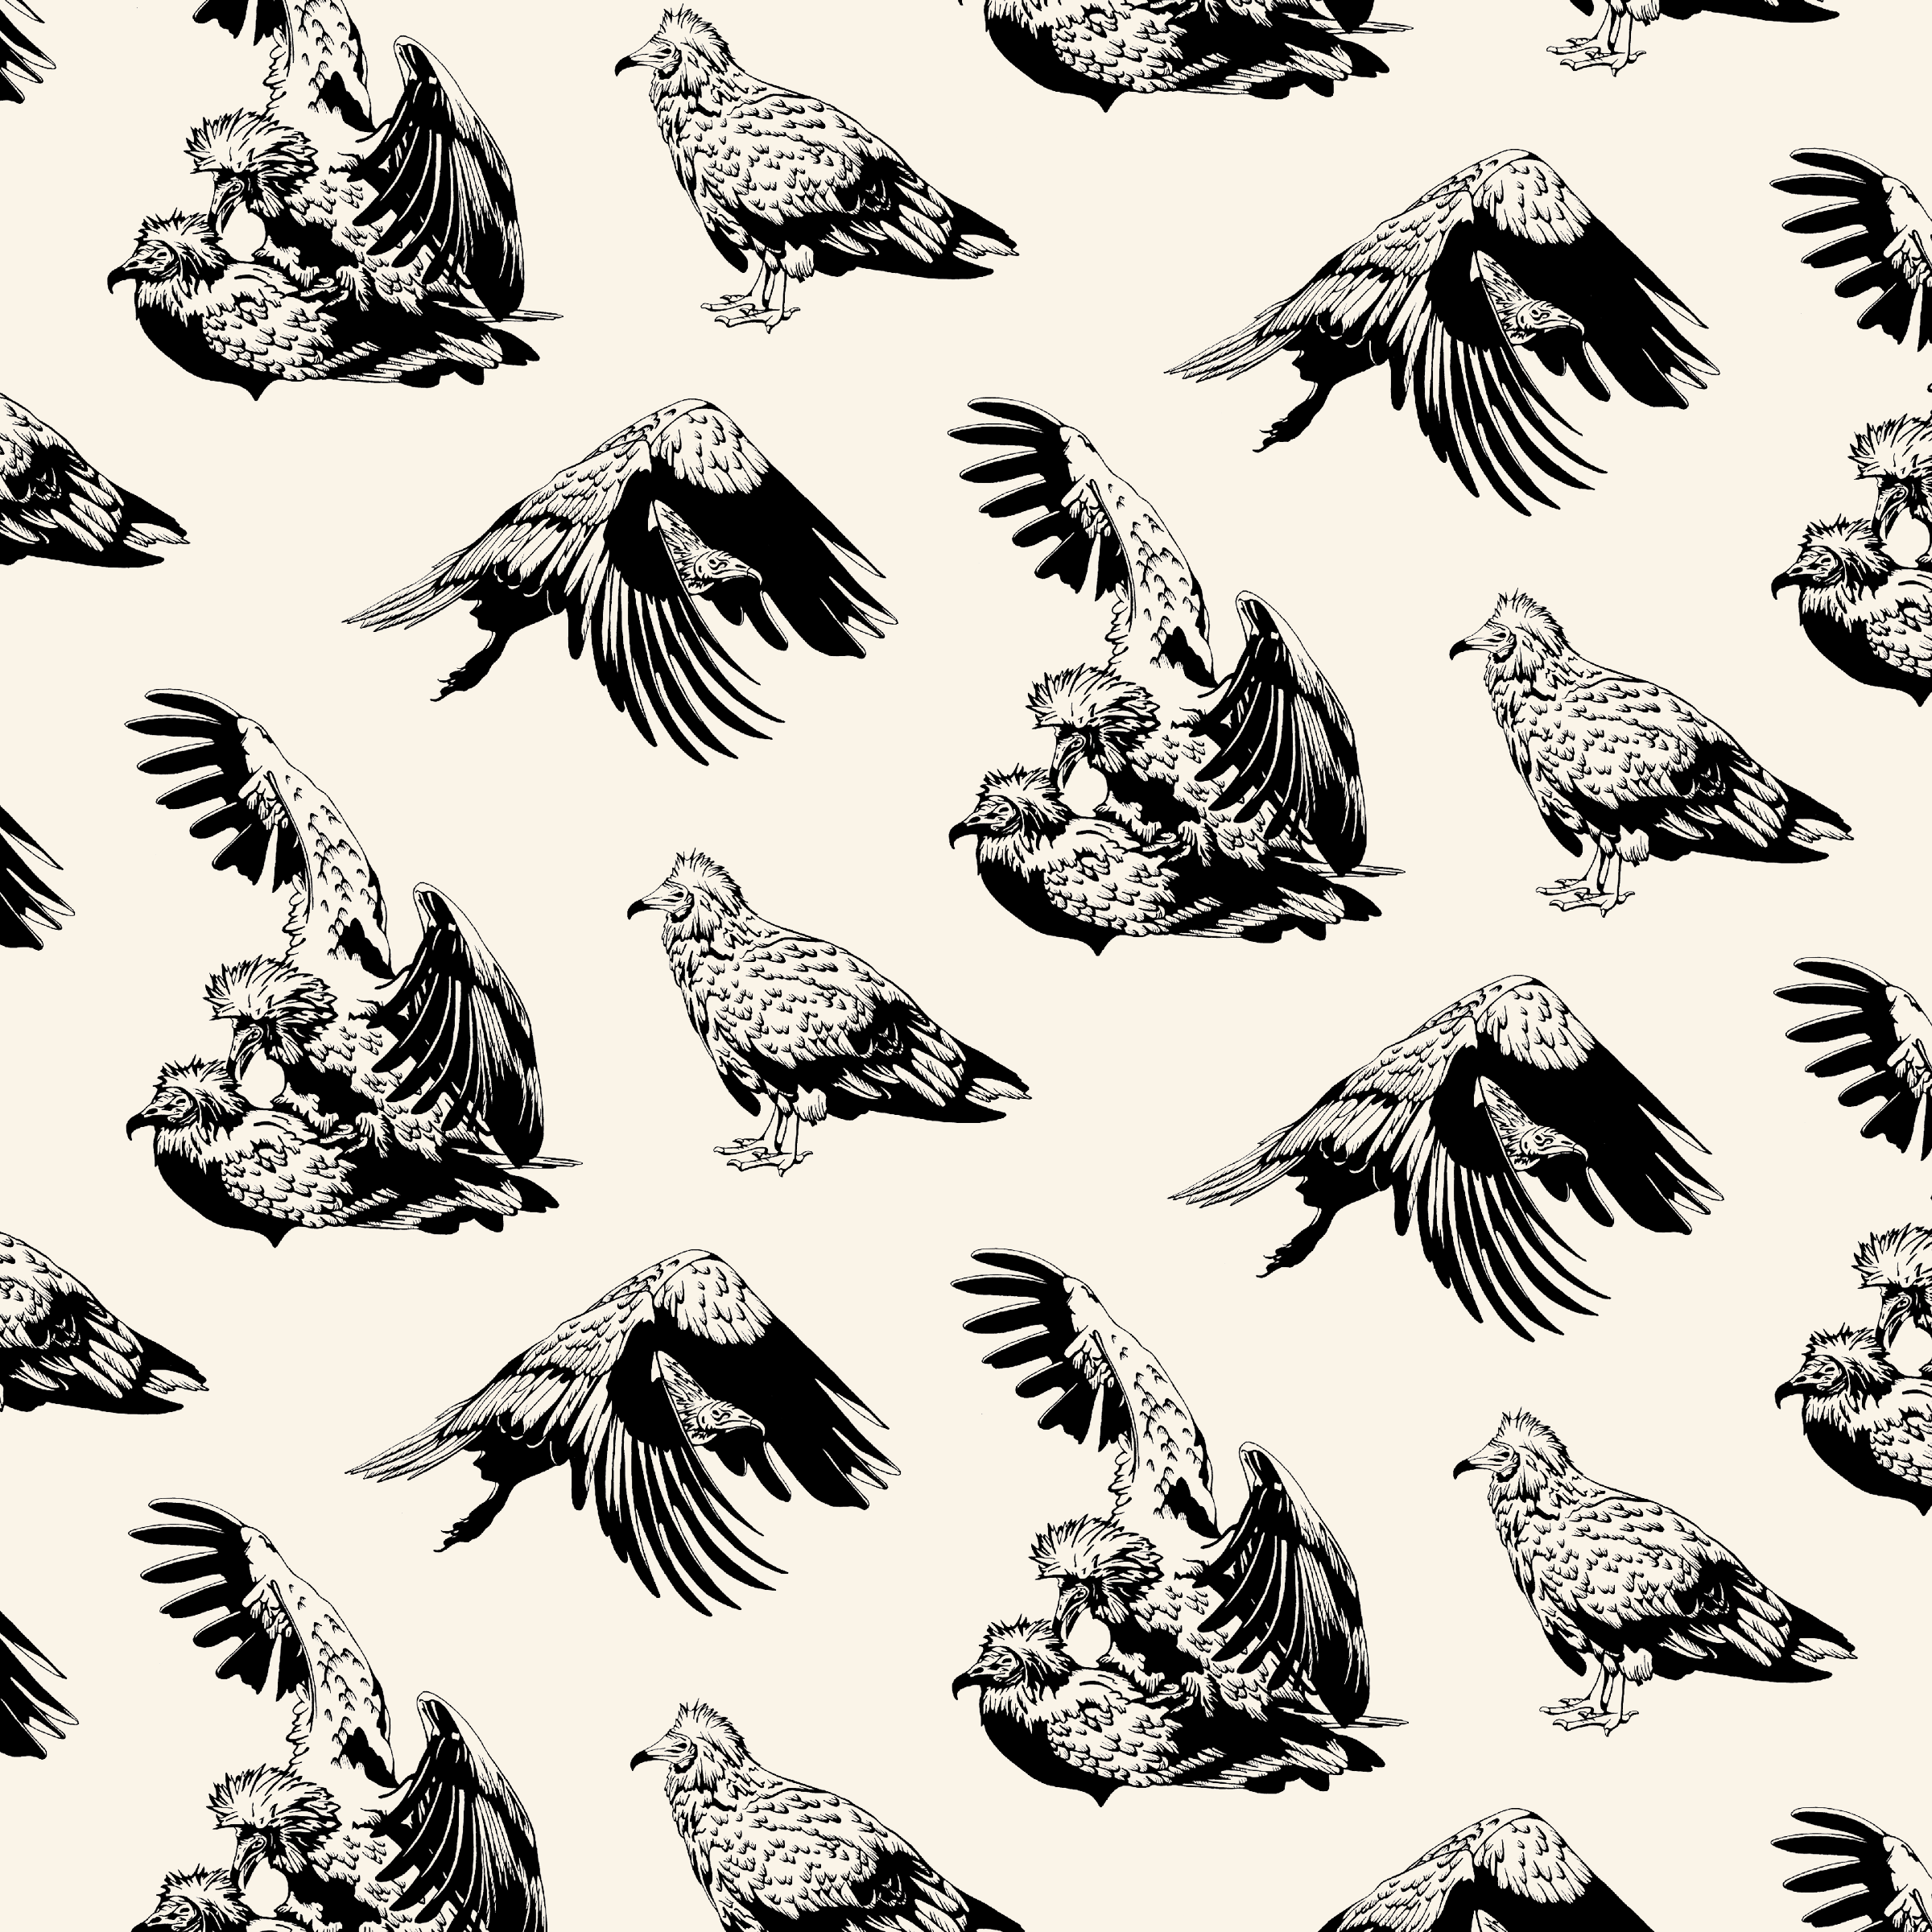 Egyptian Vulture Pattern